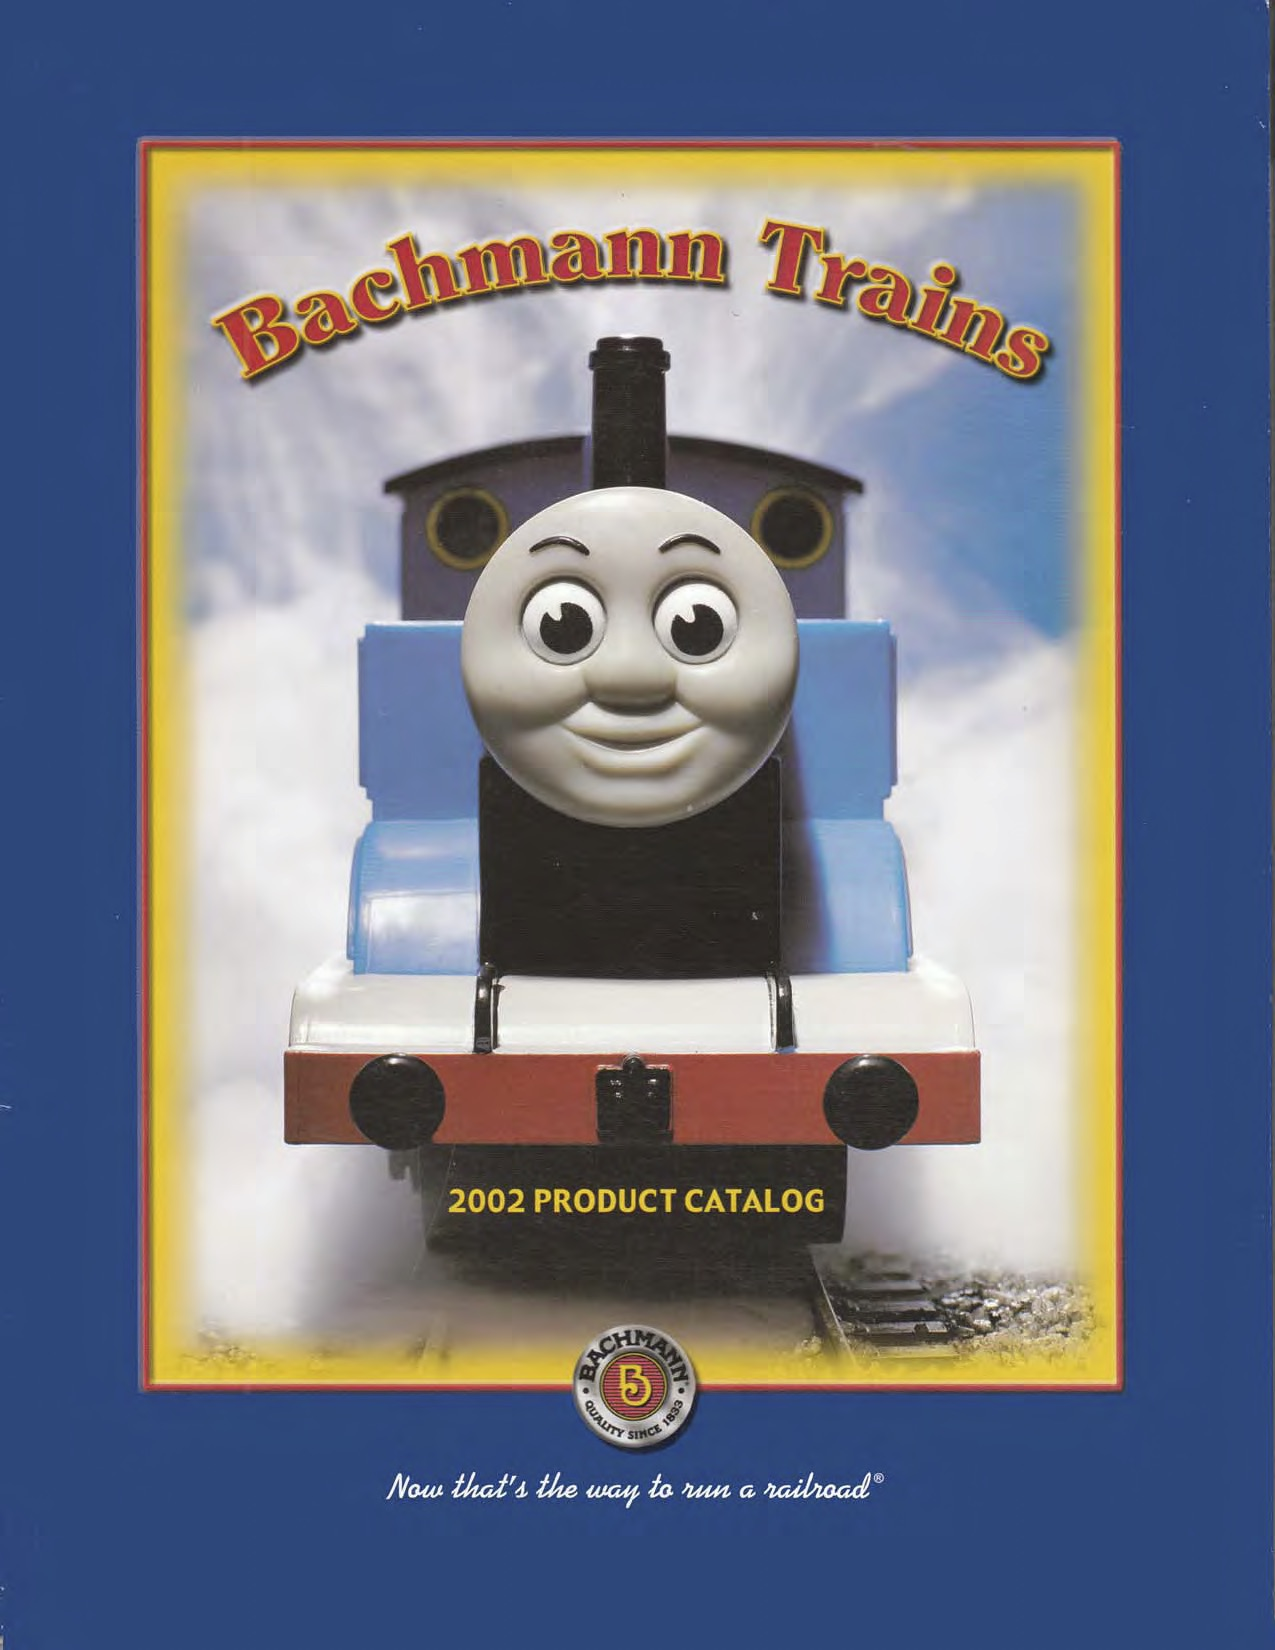 Bachmann Trains Katalog (Catalogue) 2002